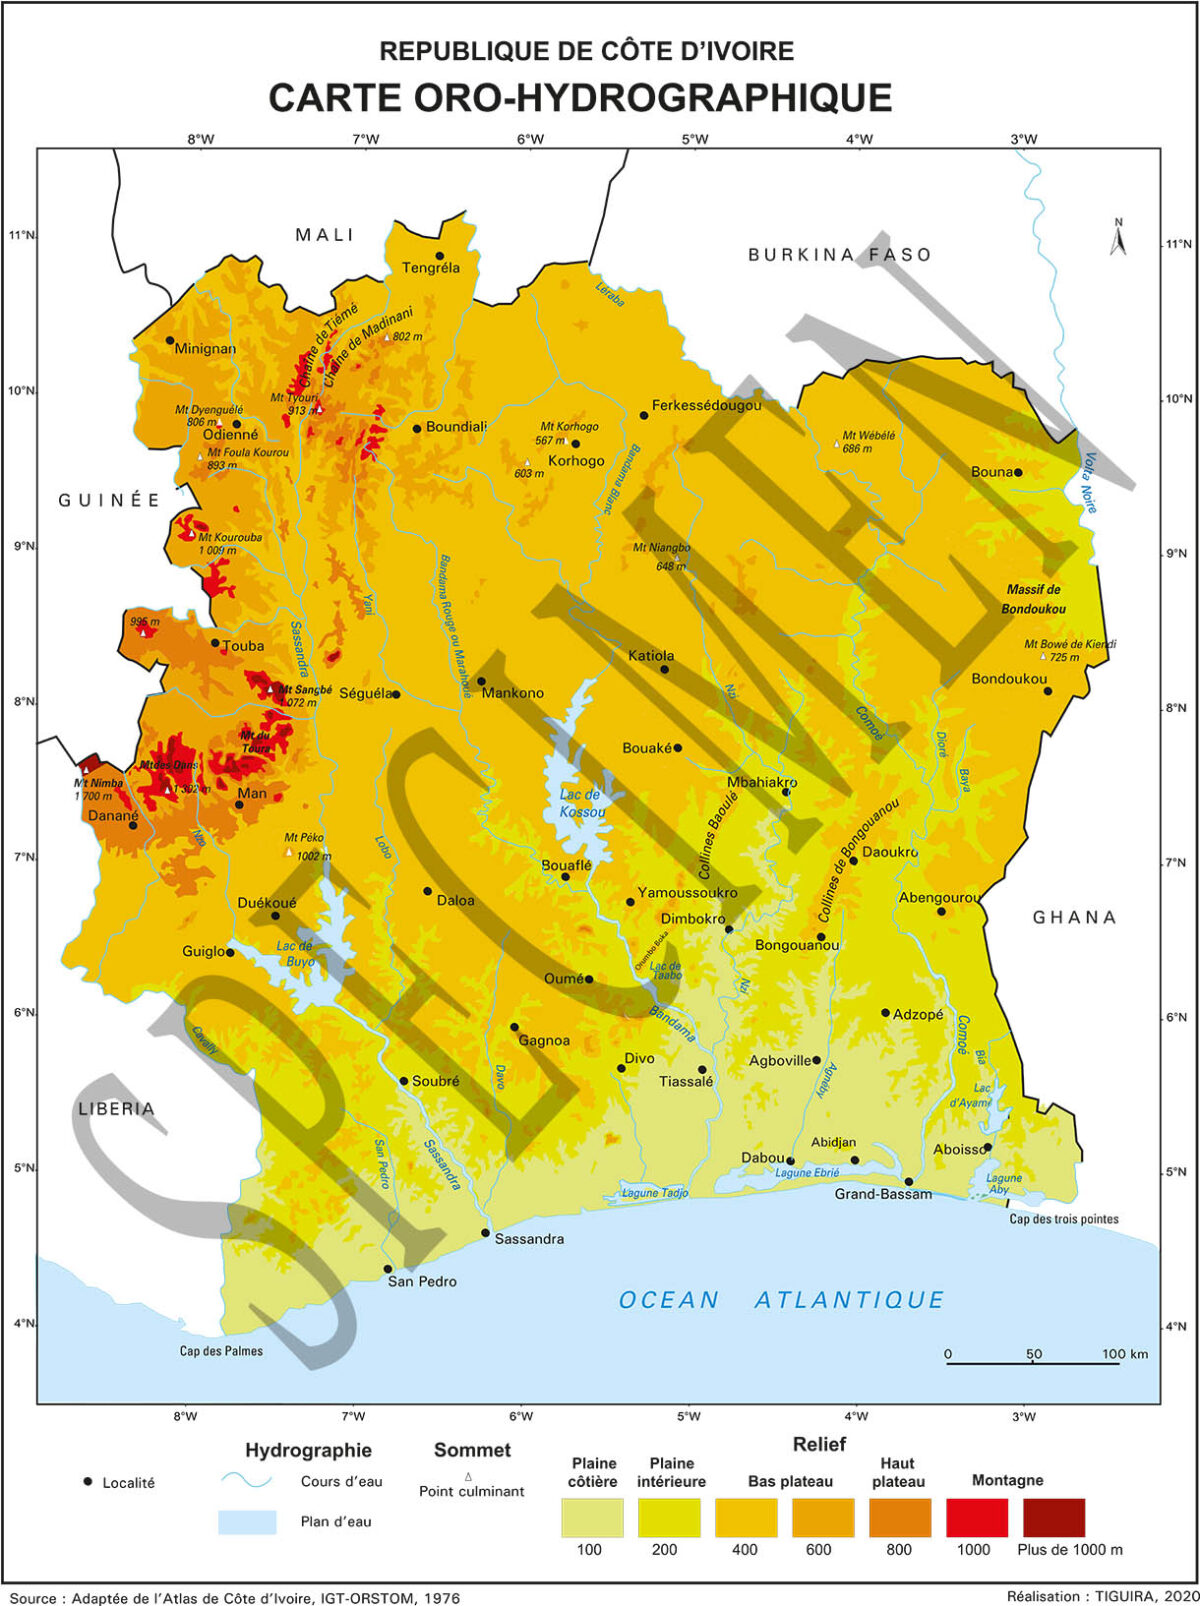 CARTE OROHYDROGRAPHIE